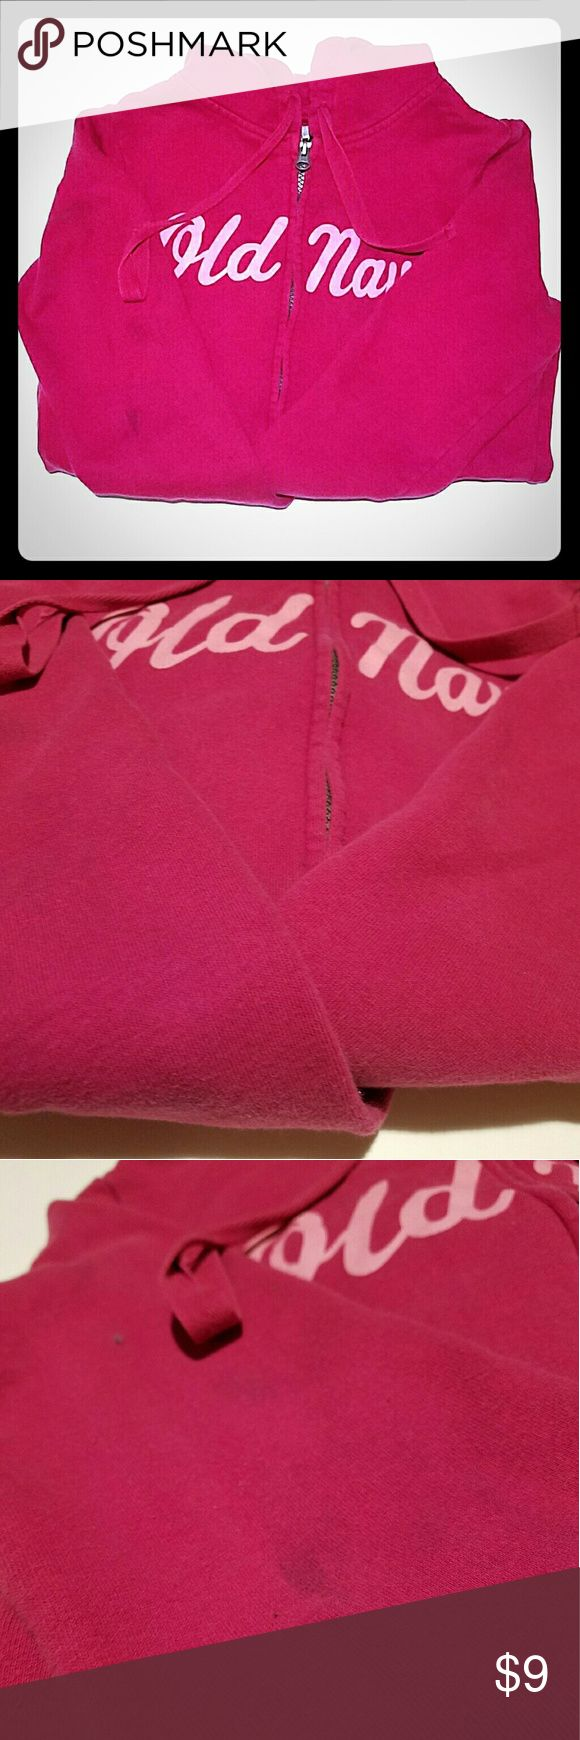 Old Navy Pink Zip Up Hoodie Pink zip up hoodie  Old Navy brand Size small   Small smudge on sleeve as shown in picture  Make me an offer! Old Navy Tops Sweatshirts & Hoodies